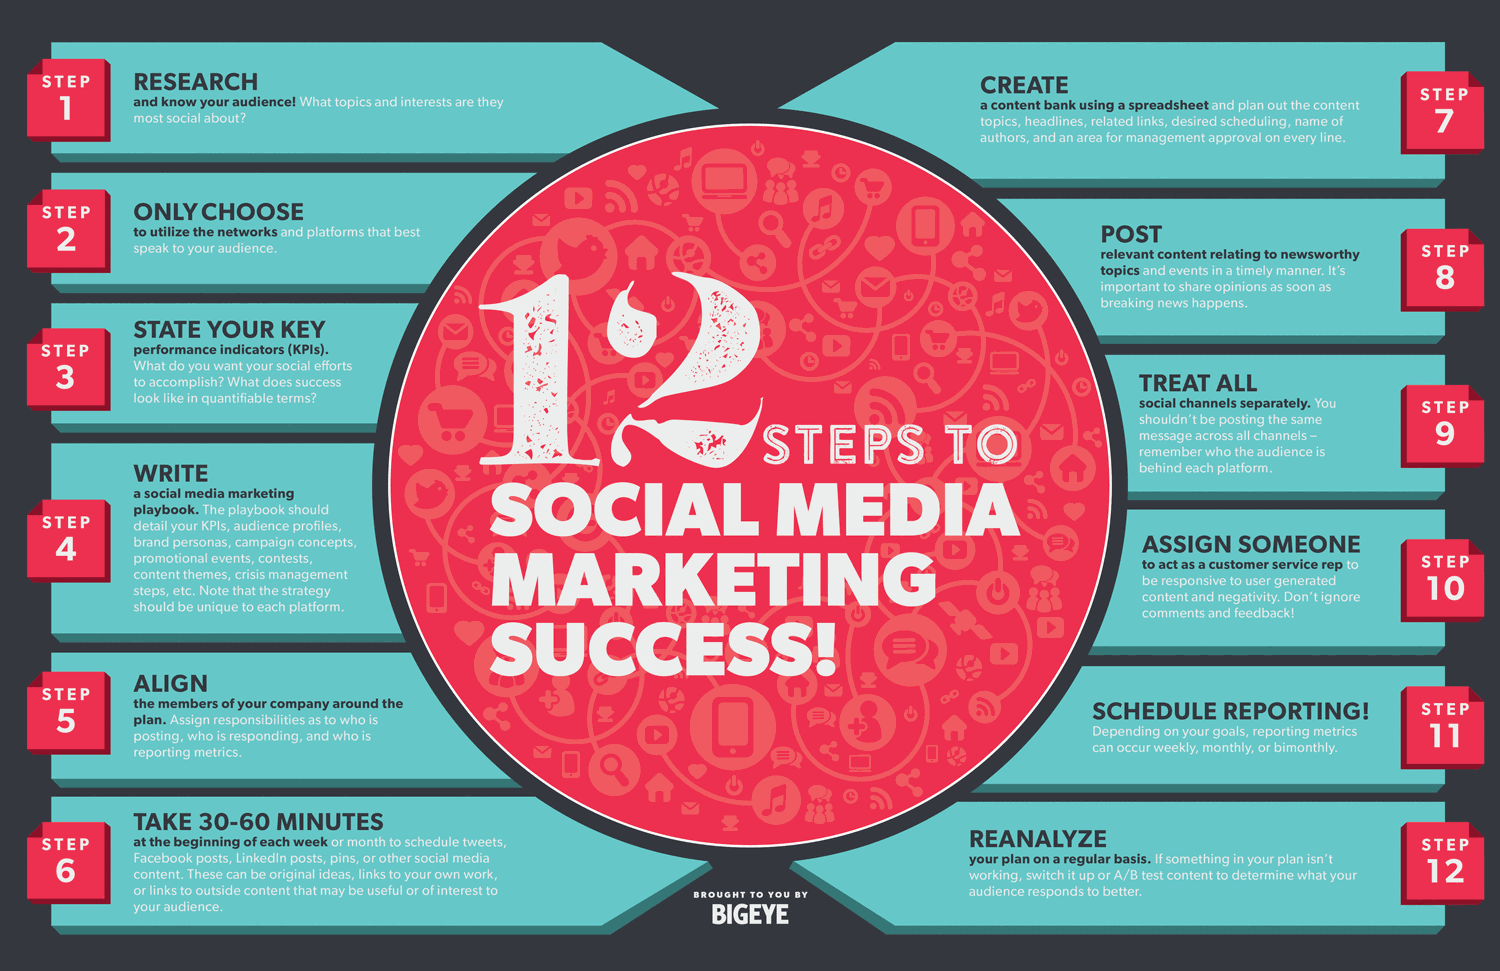 12 steps to social media marketing success